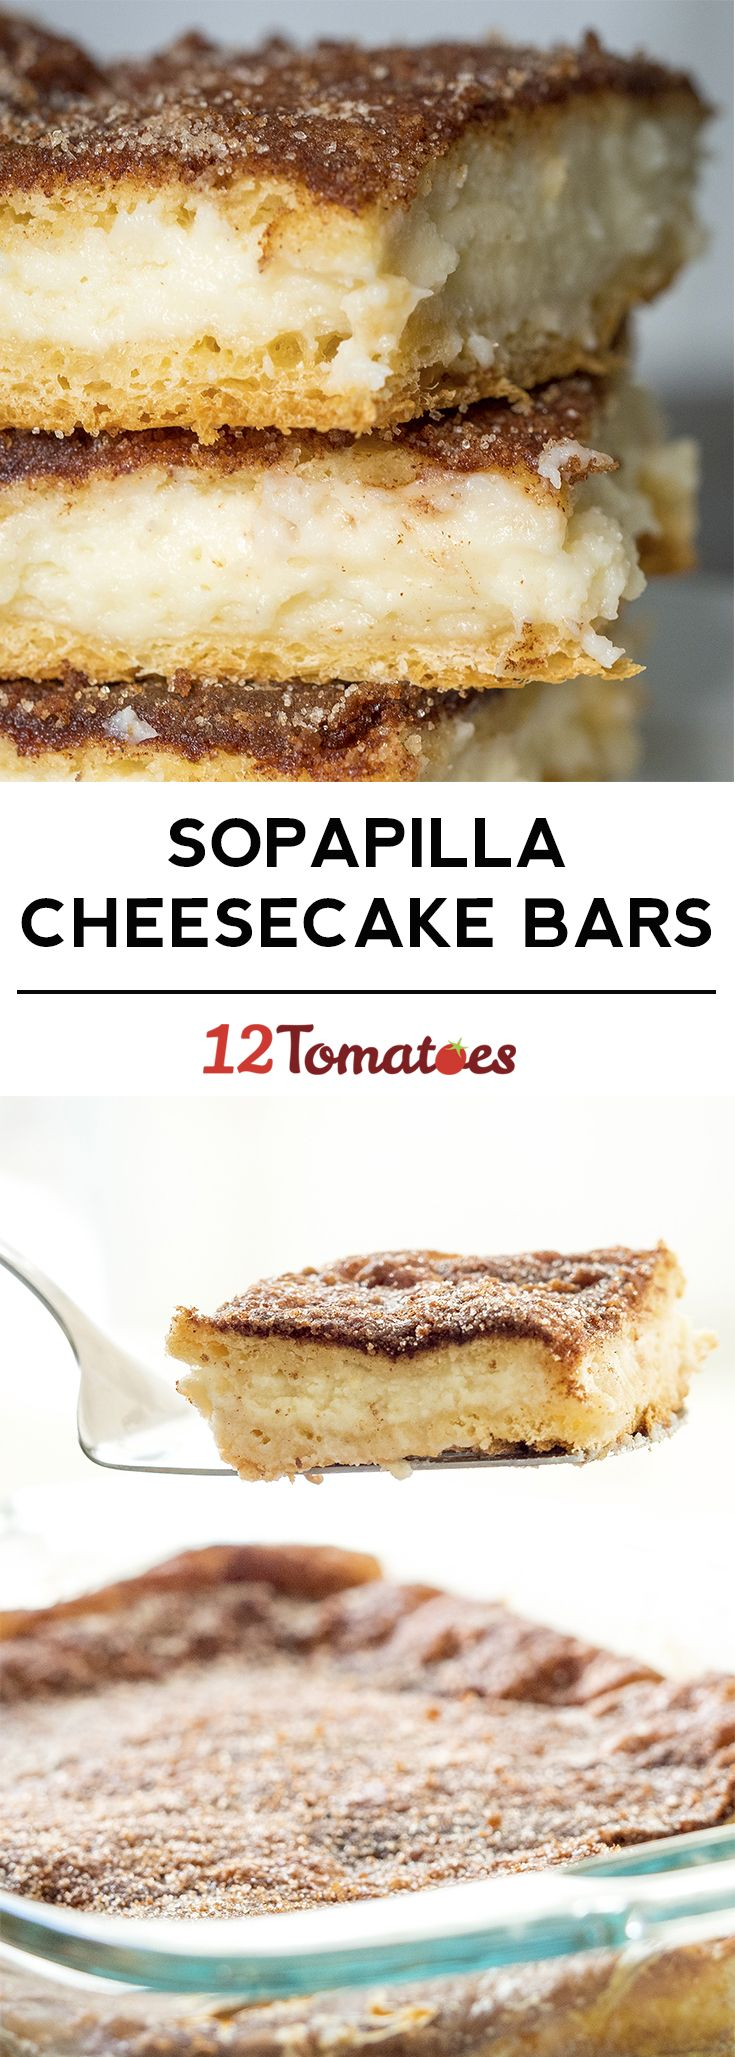 Sopapilla Cheesecake Bars